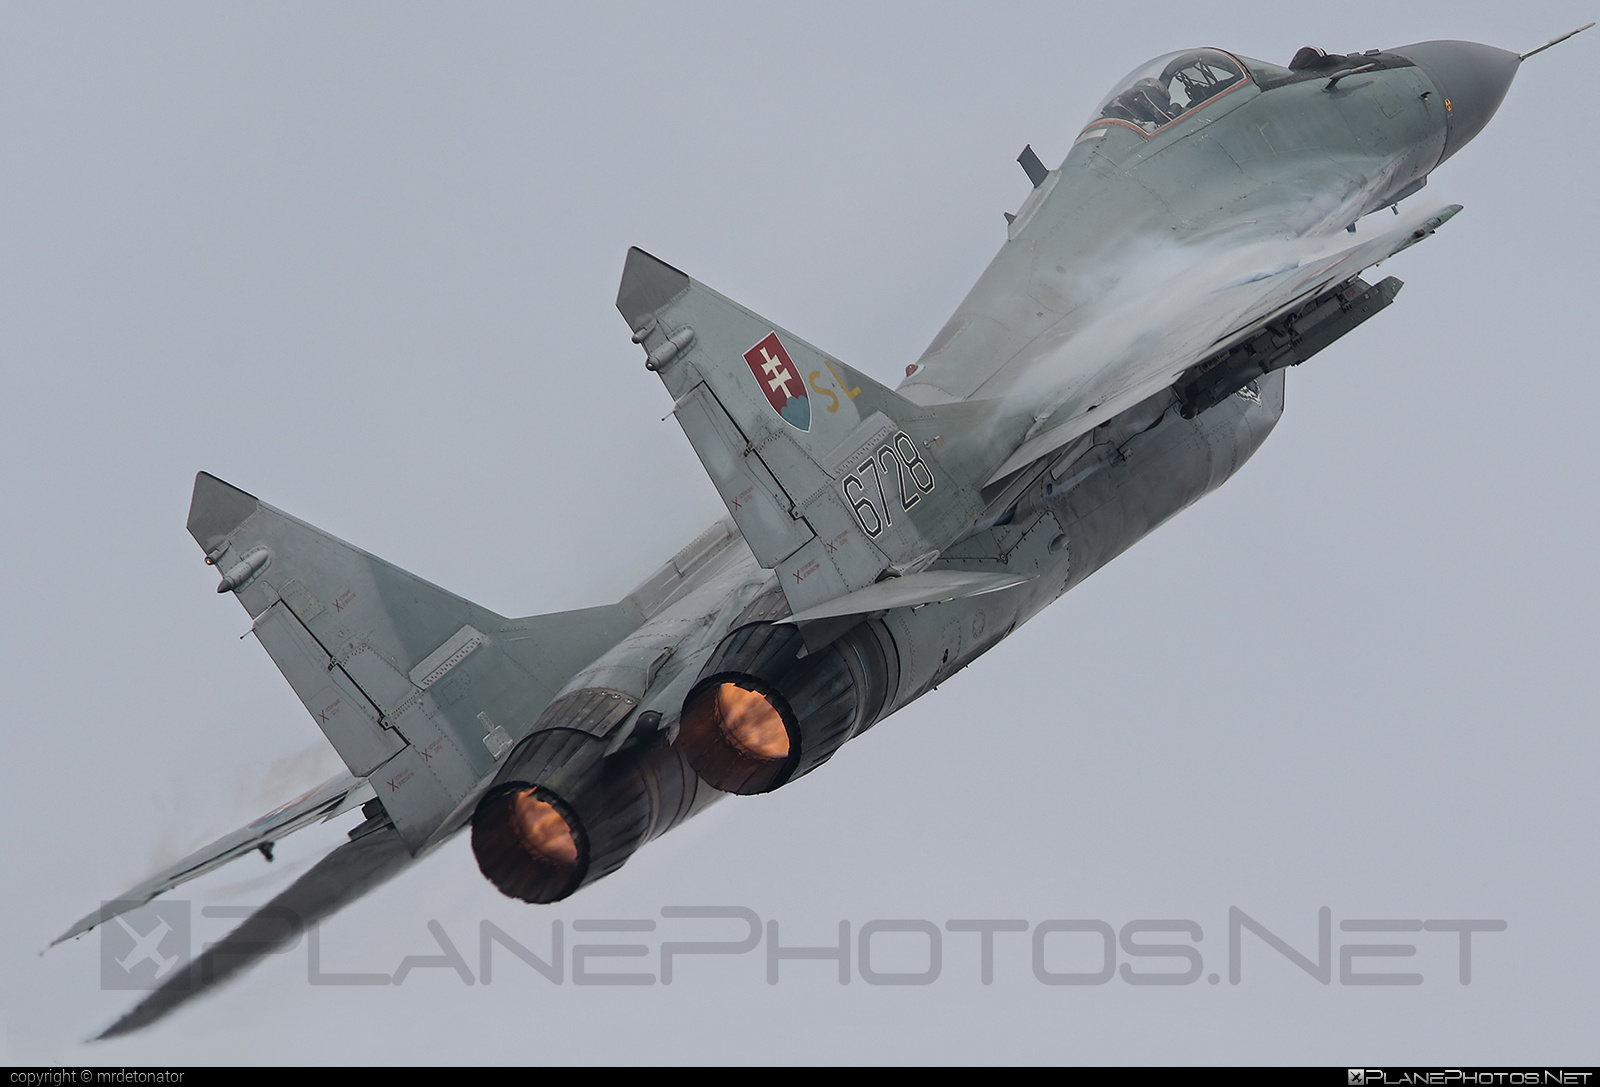 Mikoyan-Gurevich MiG-29AS - 6728 operated by Vzdušné sily OS SR (Slovak Air Force) #mig #mig29 #mig29as #mikoyangurevich #natodays #natodays2015 #slovakairforce #vzdusnesilyossr